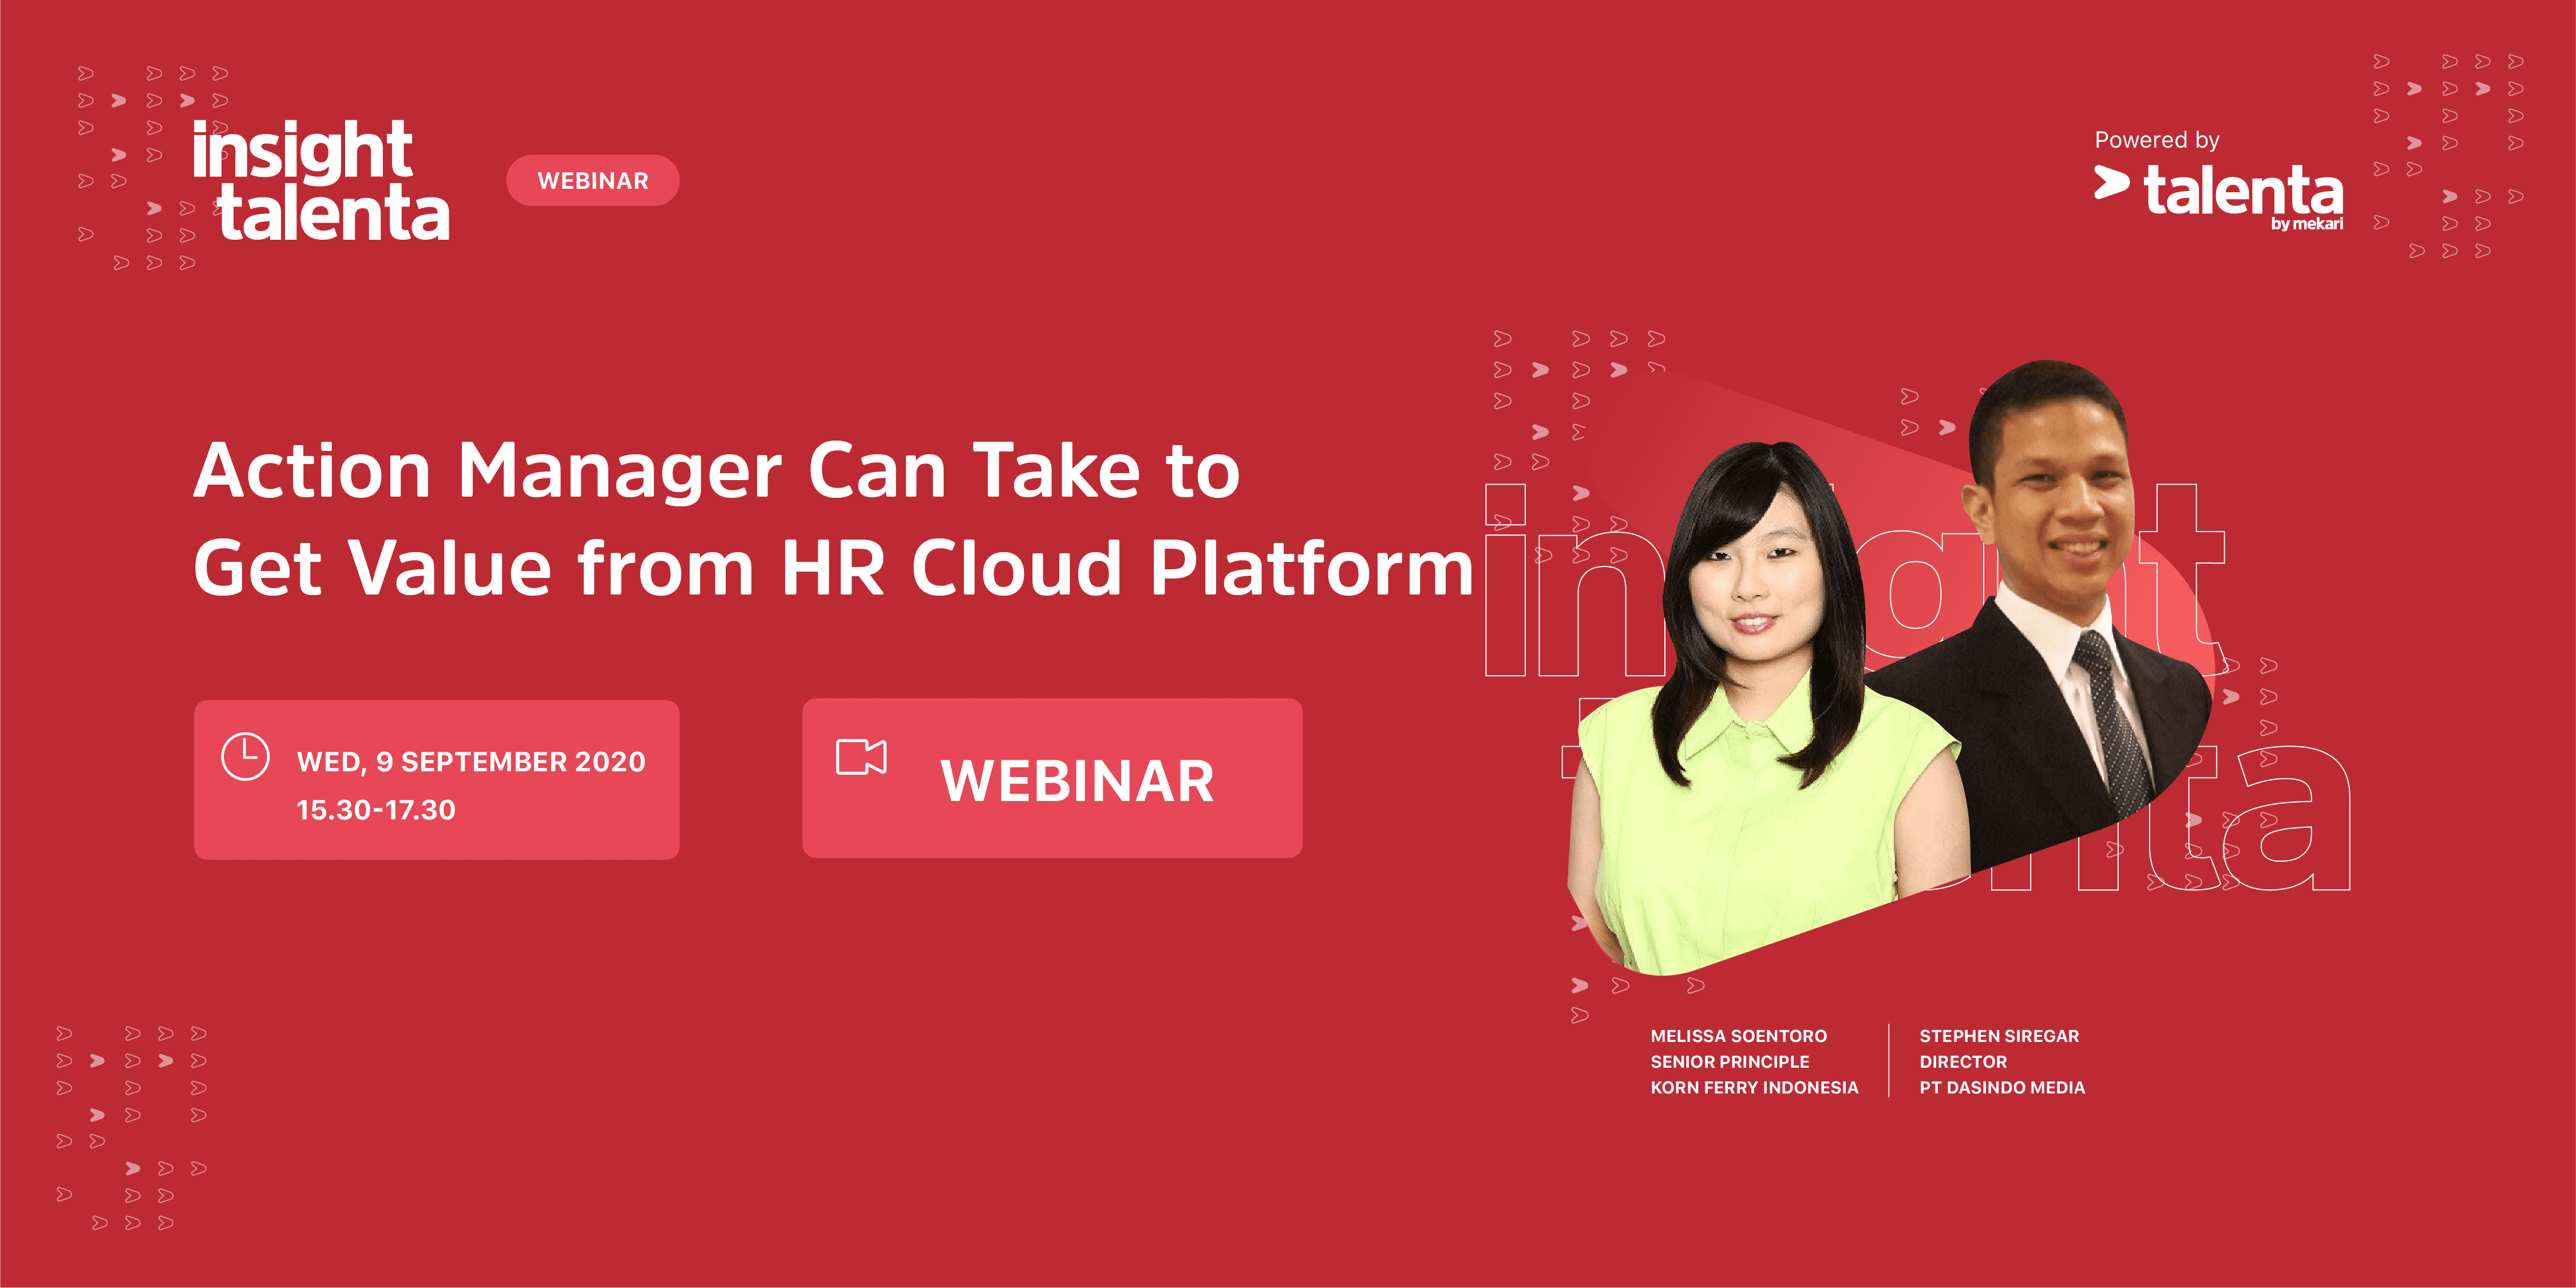 Insight Talenta Actions Manager Can Take To Get Value From HR Cloud From